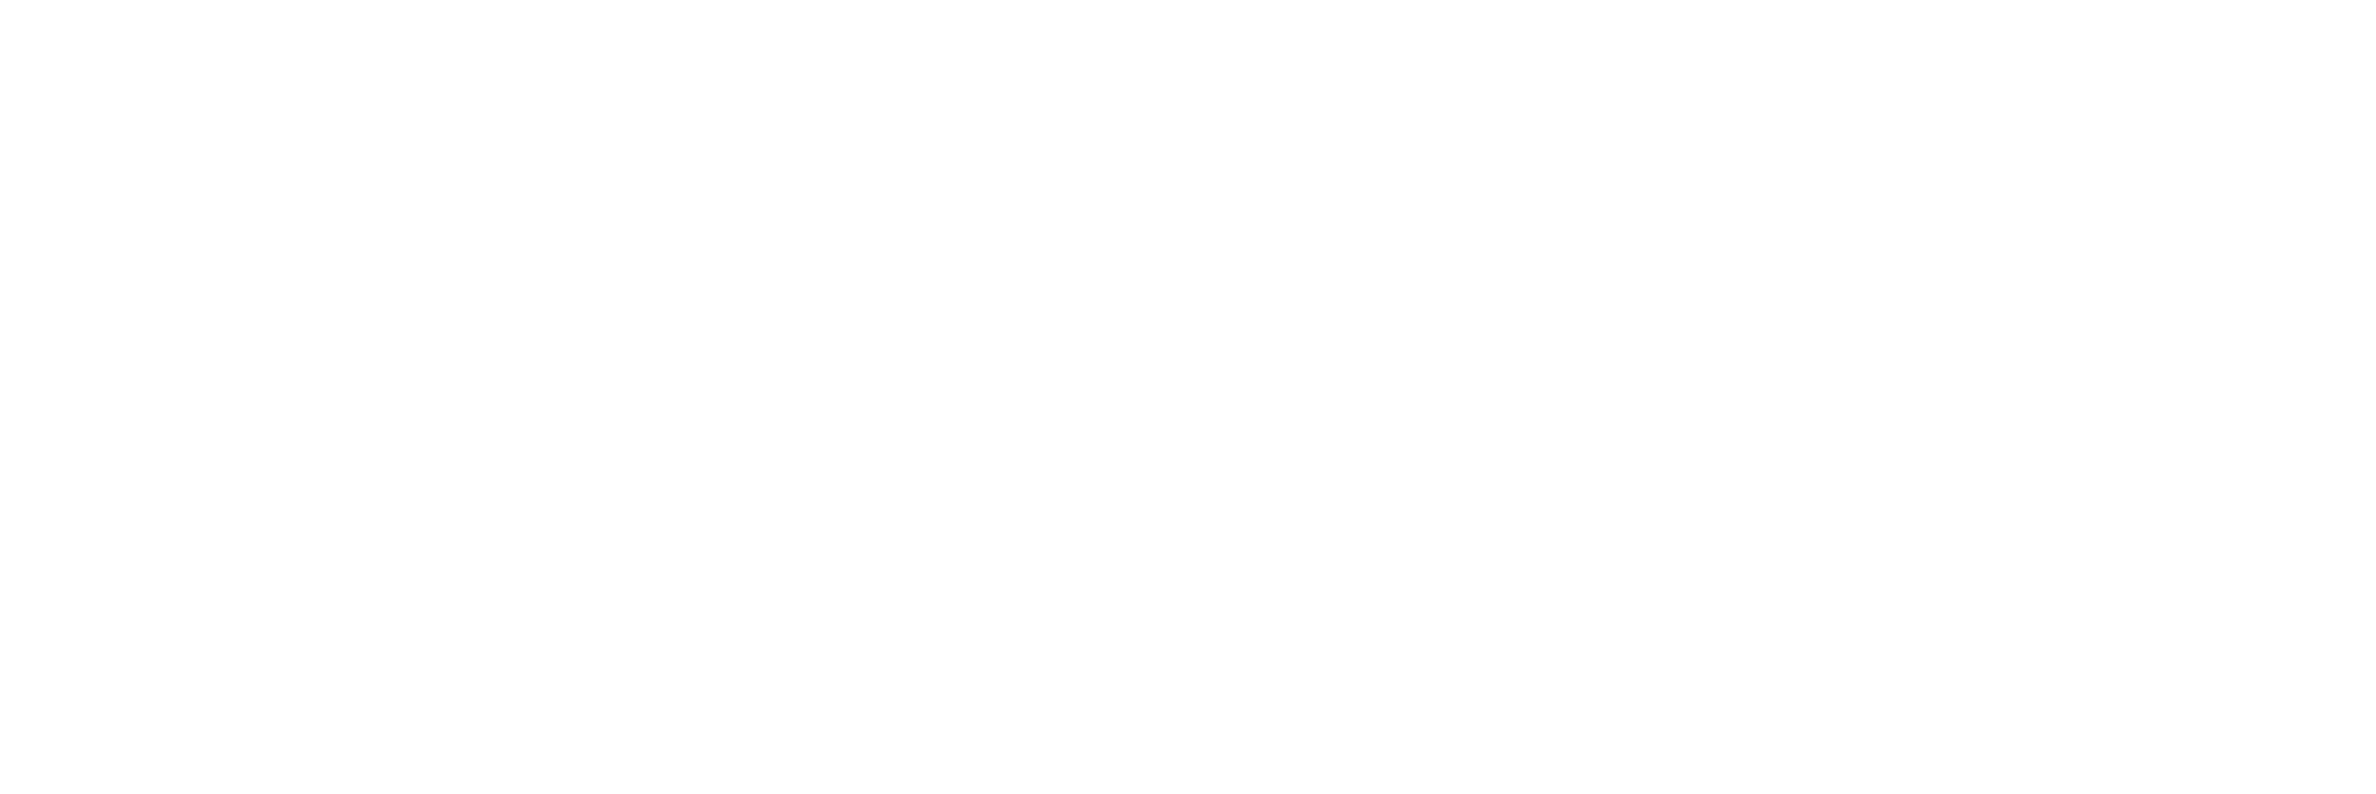 Gospel Outreach